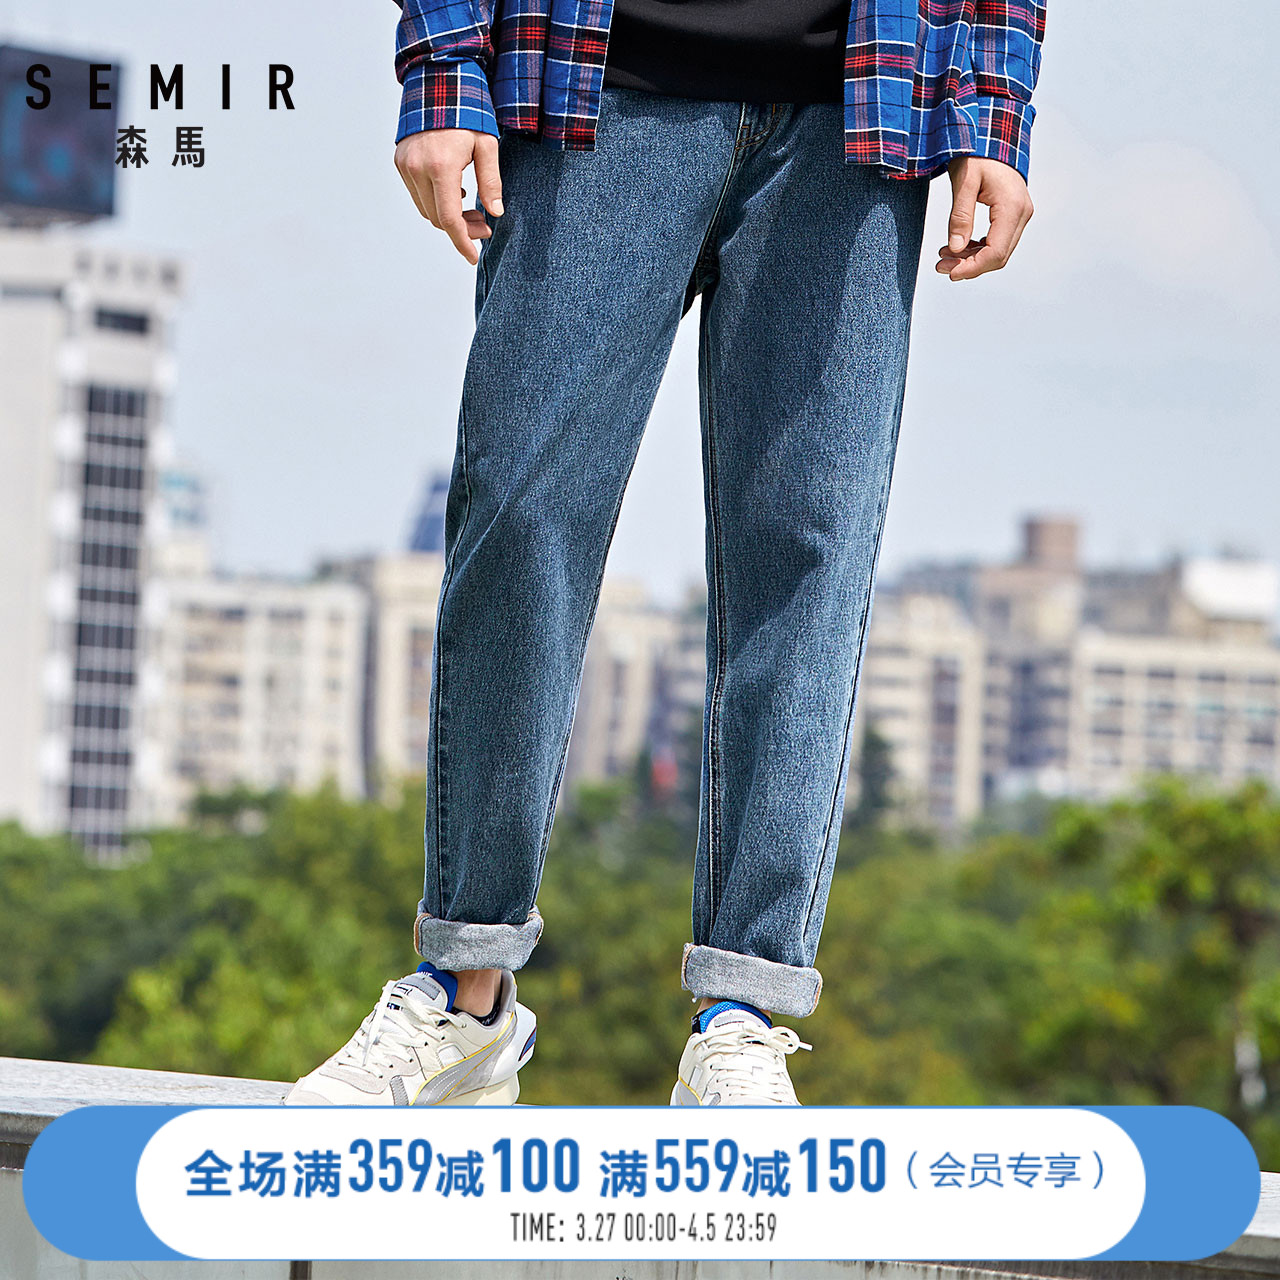 Sun Ma jeans, man Bai Yu, spring straight tube loose jeans pants, man Harun pants, fashion brand, Dad pants